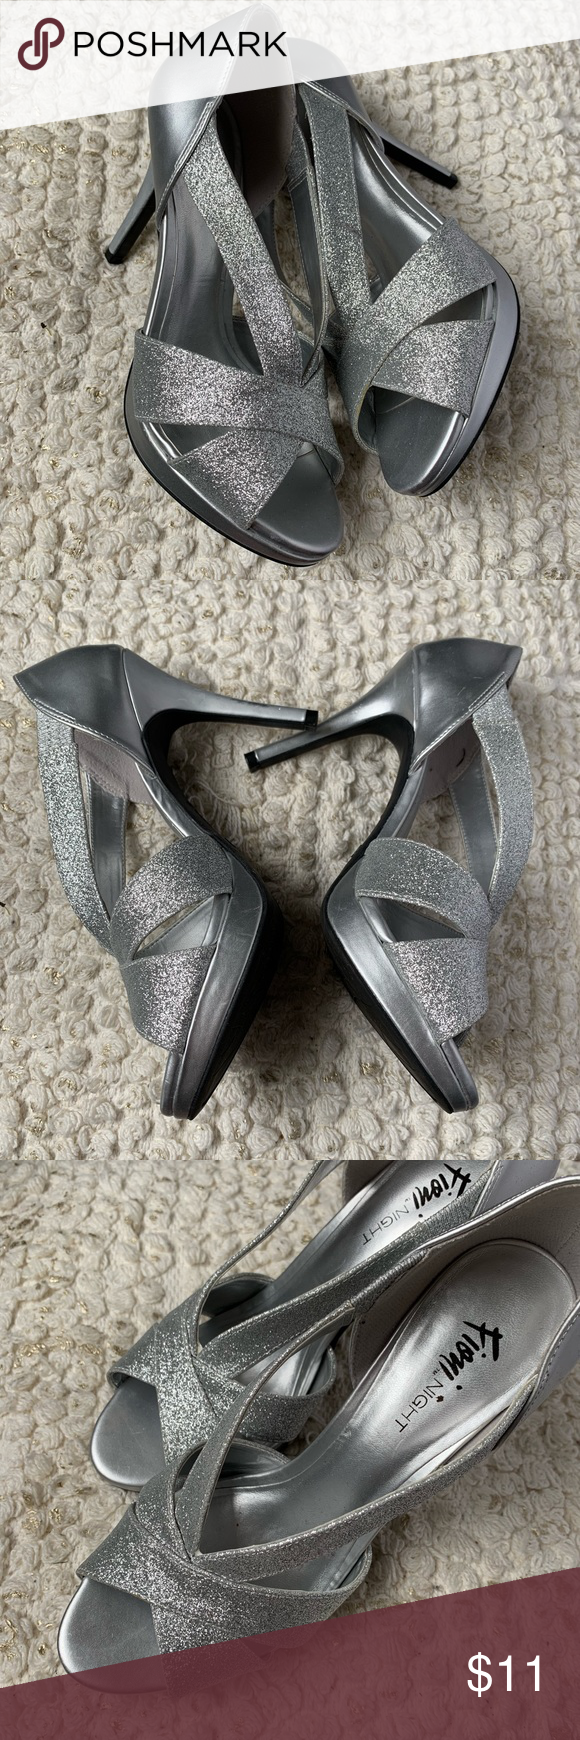 08eaeb540e Fioni Icicle Glitter Pumps Worn once. Like new. Fioni brand from Payless.  Fioni